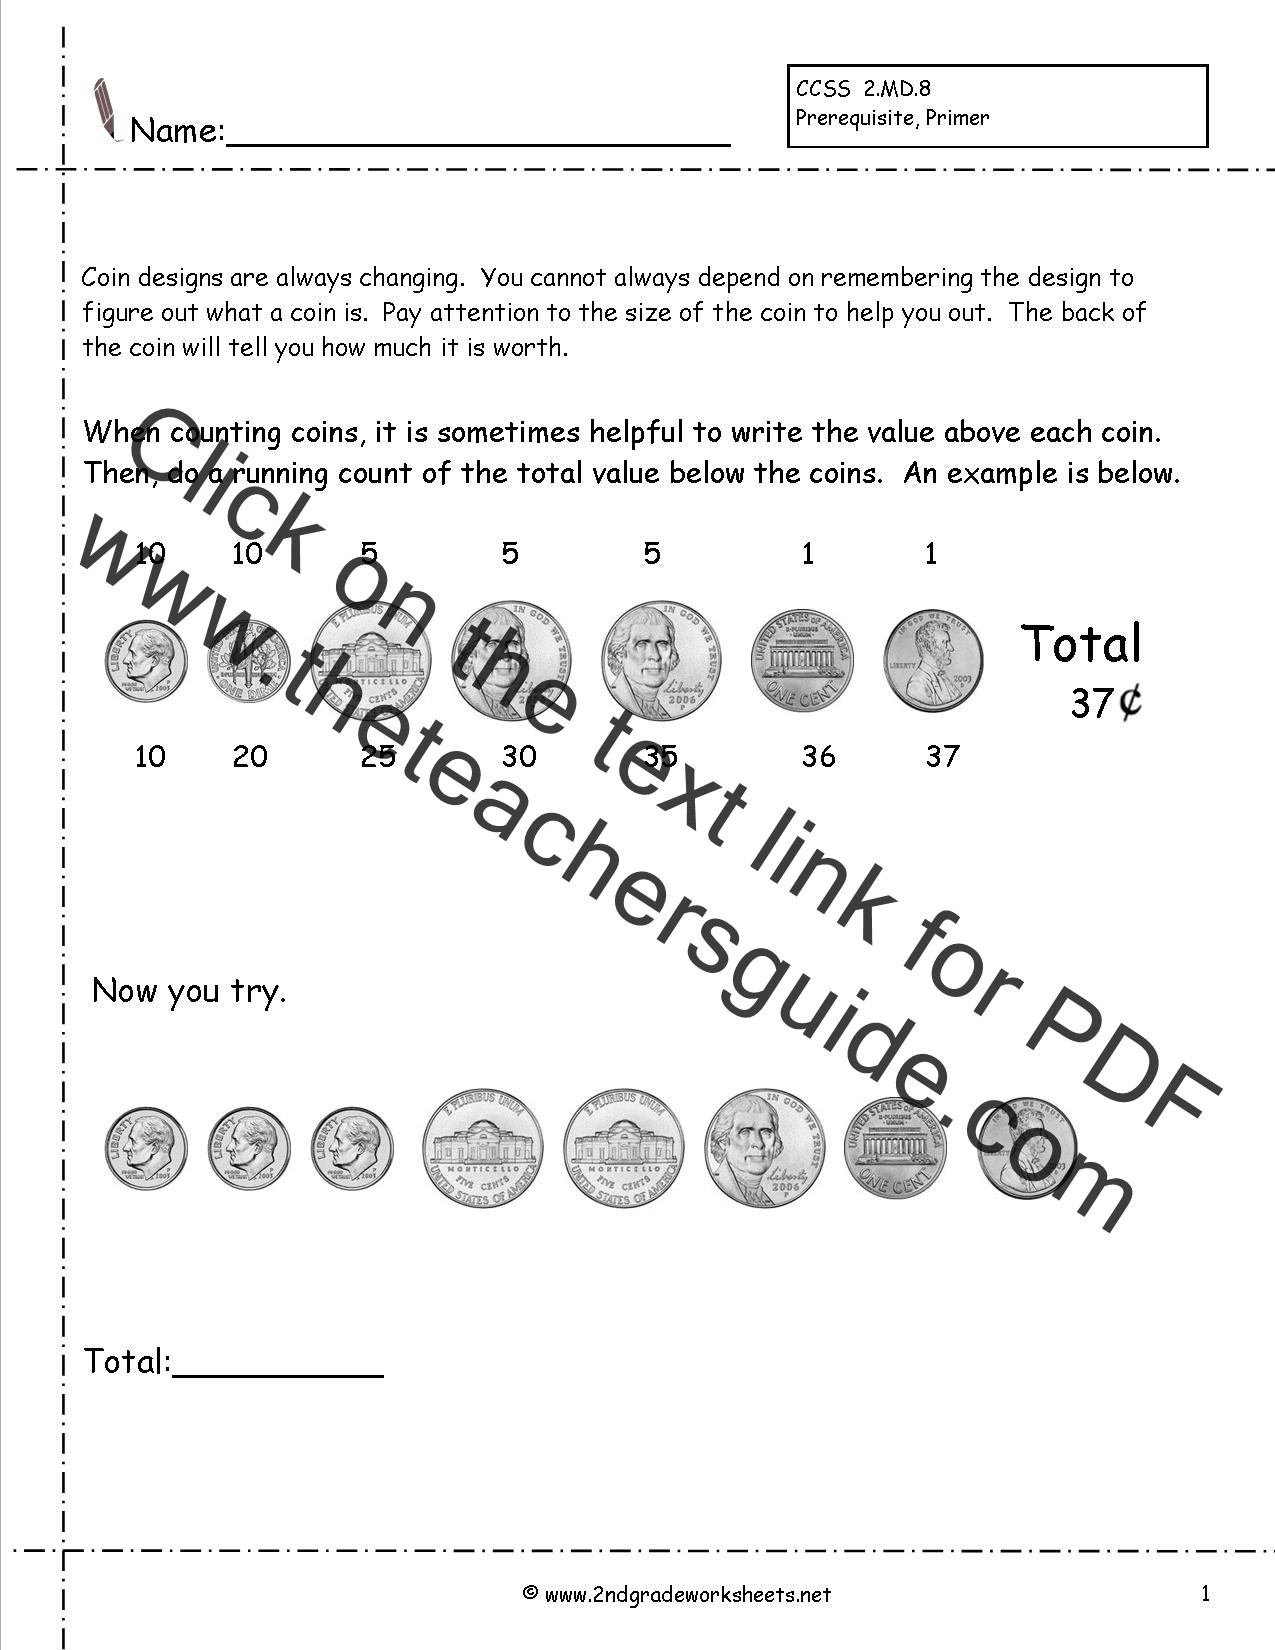 Counting Coins Worksheets 2nd Grade Adding Money Worksheets 2nd Grade Making Money Kenya